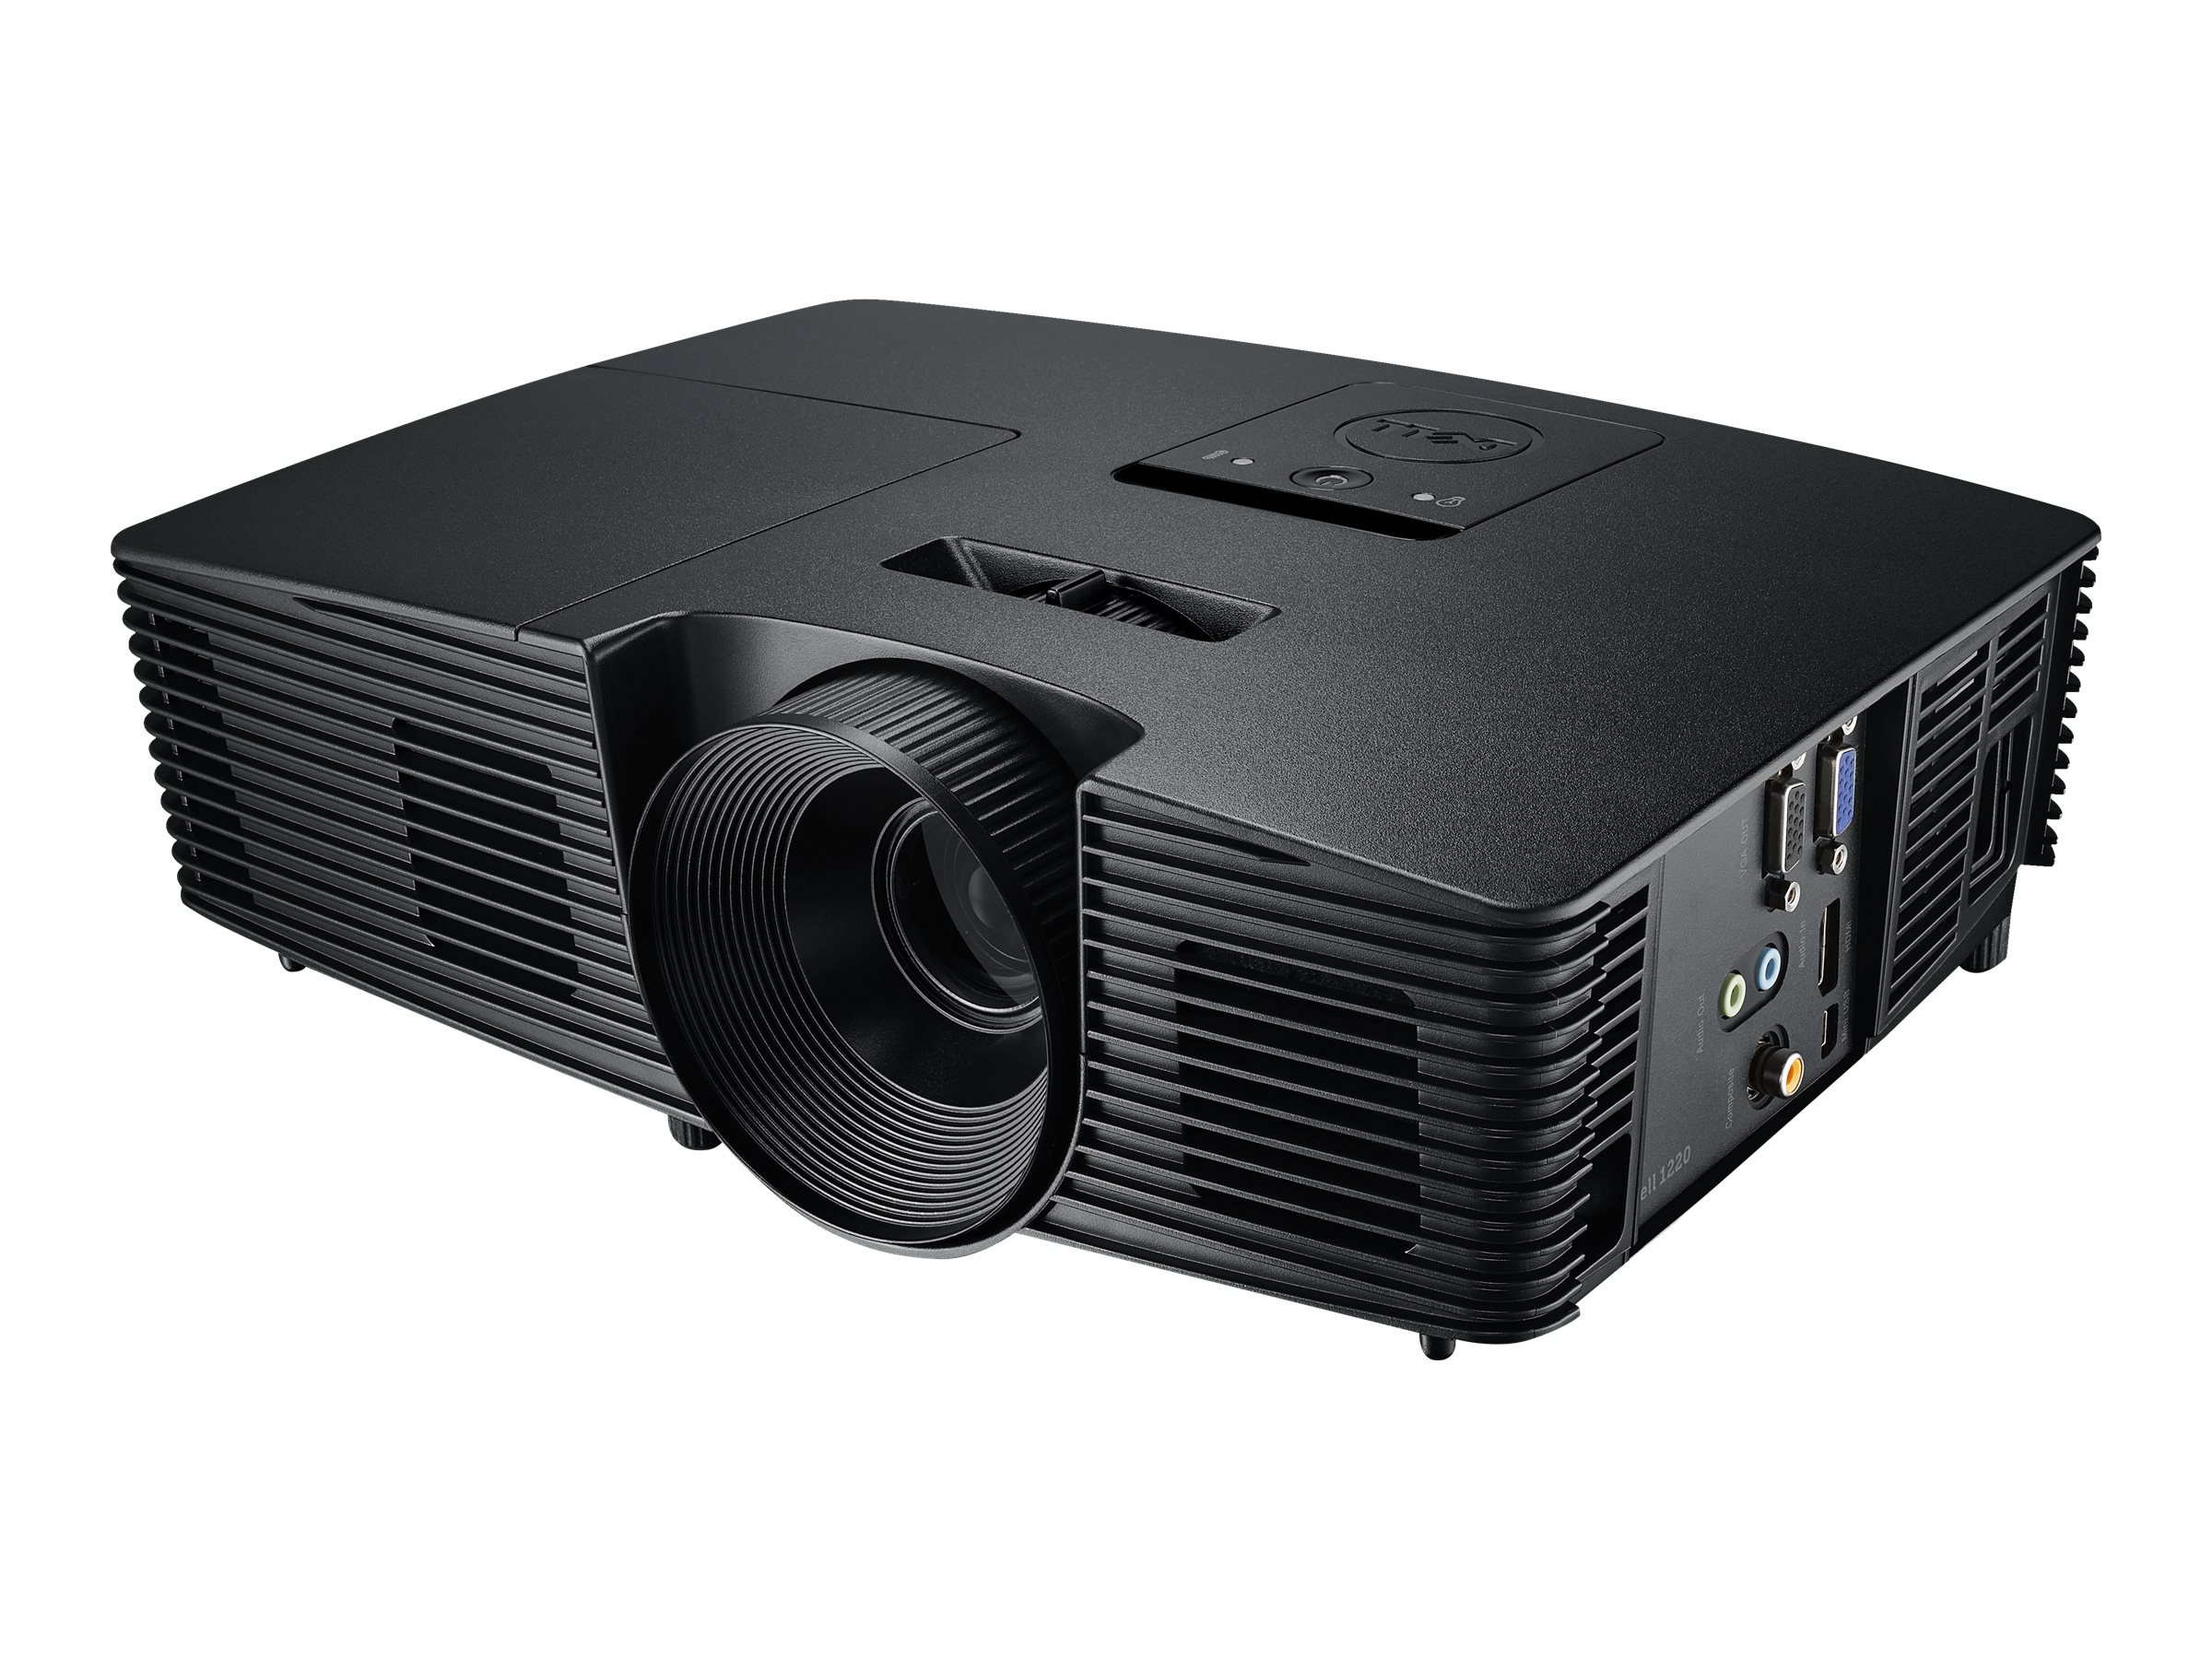 Dell 1220 SVGA DLP Projector, 2700 Lumens, Black, 1220